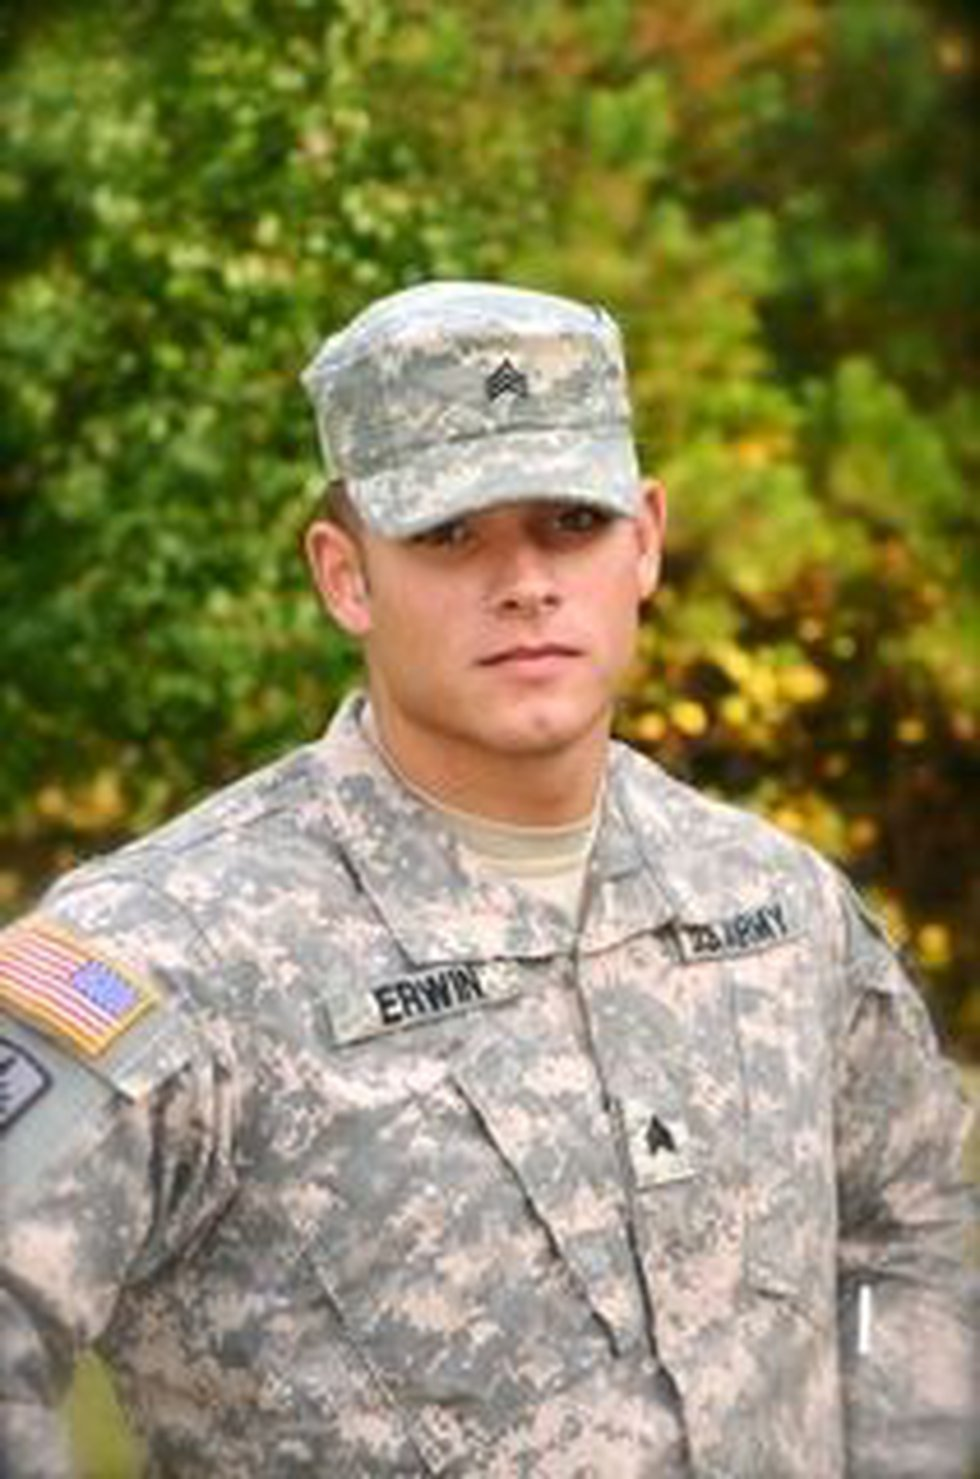 Colin Erwin was wounded by mortar fire in Afghanistan.